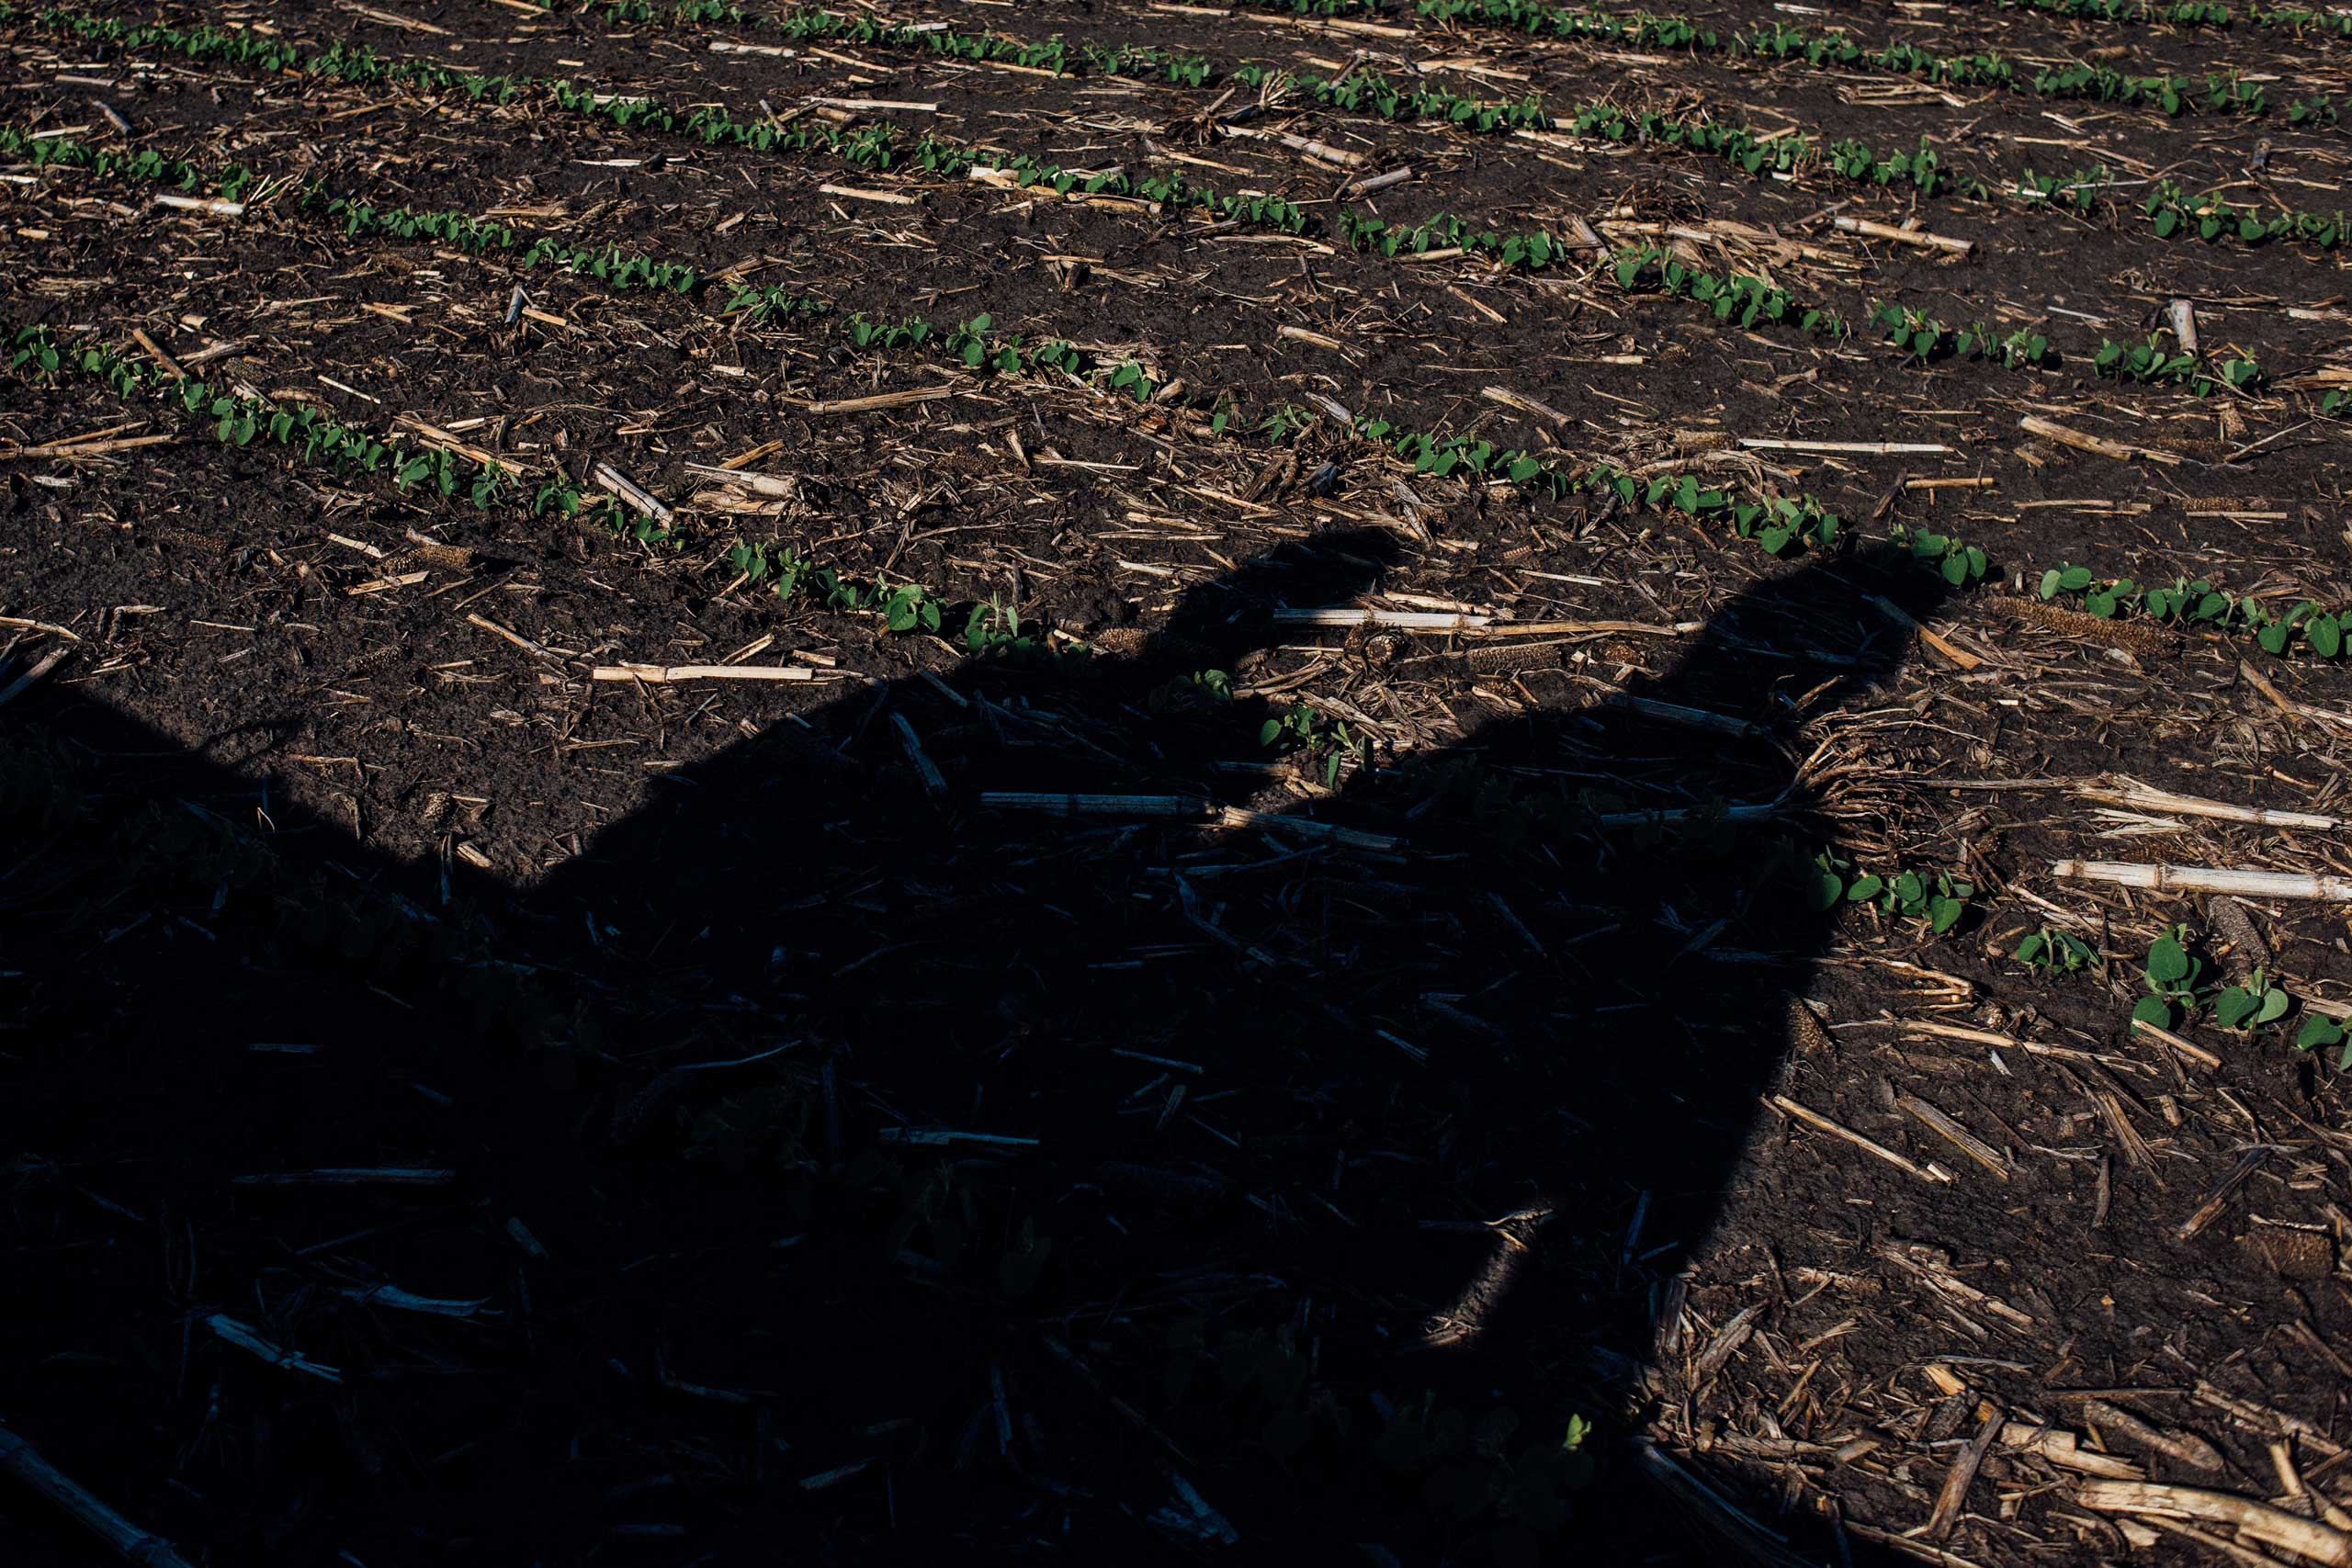 Shadows fall on the tiny rows while rock picking in Springfield Township, Minnesota on June 2, 2016.